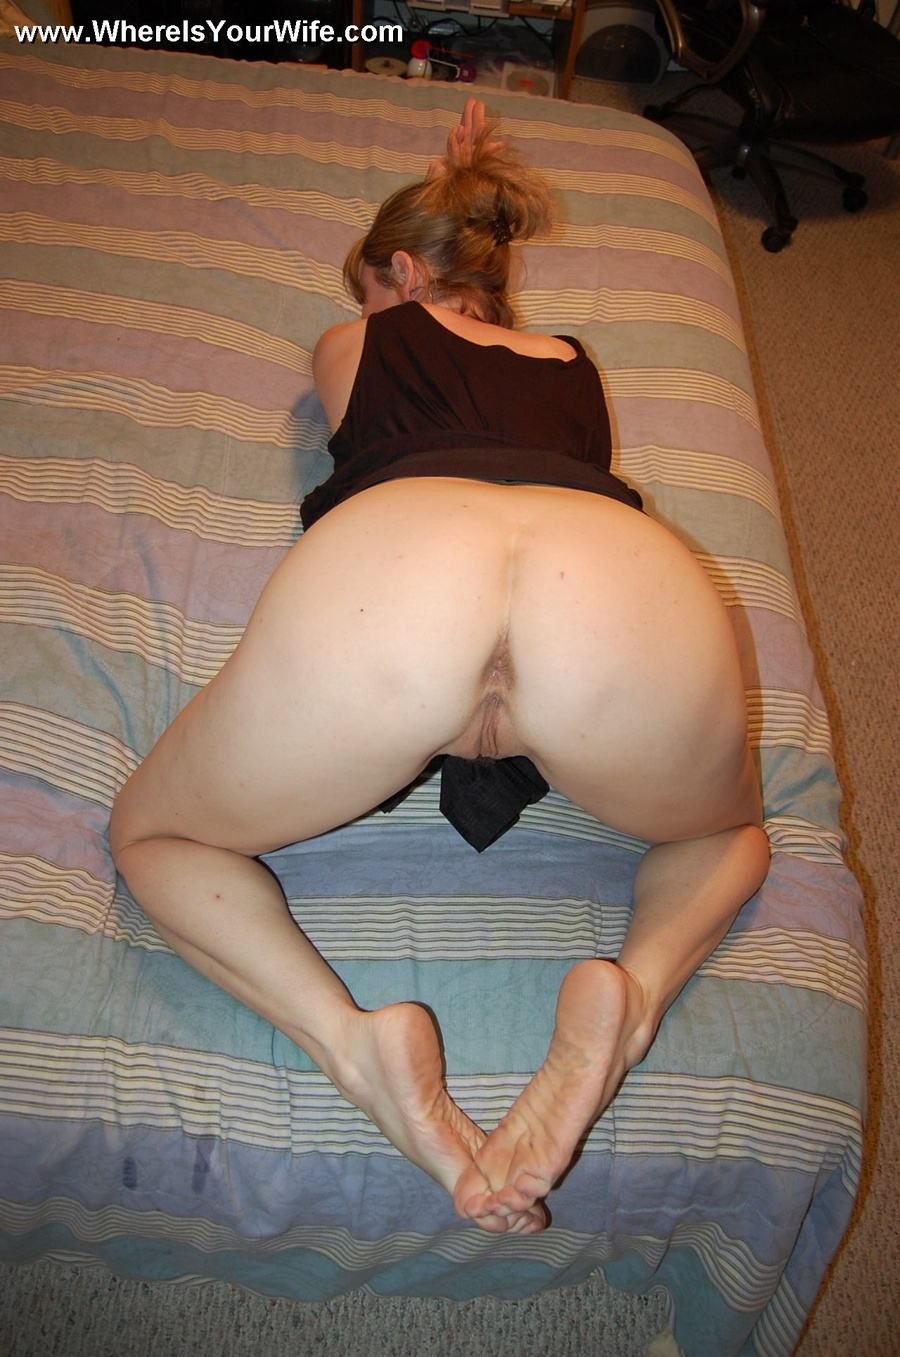 White milf with no teeth pampers my bbc